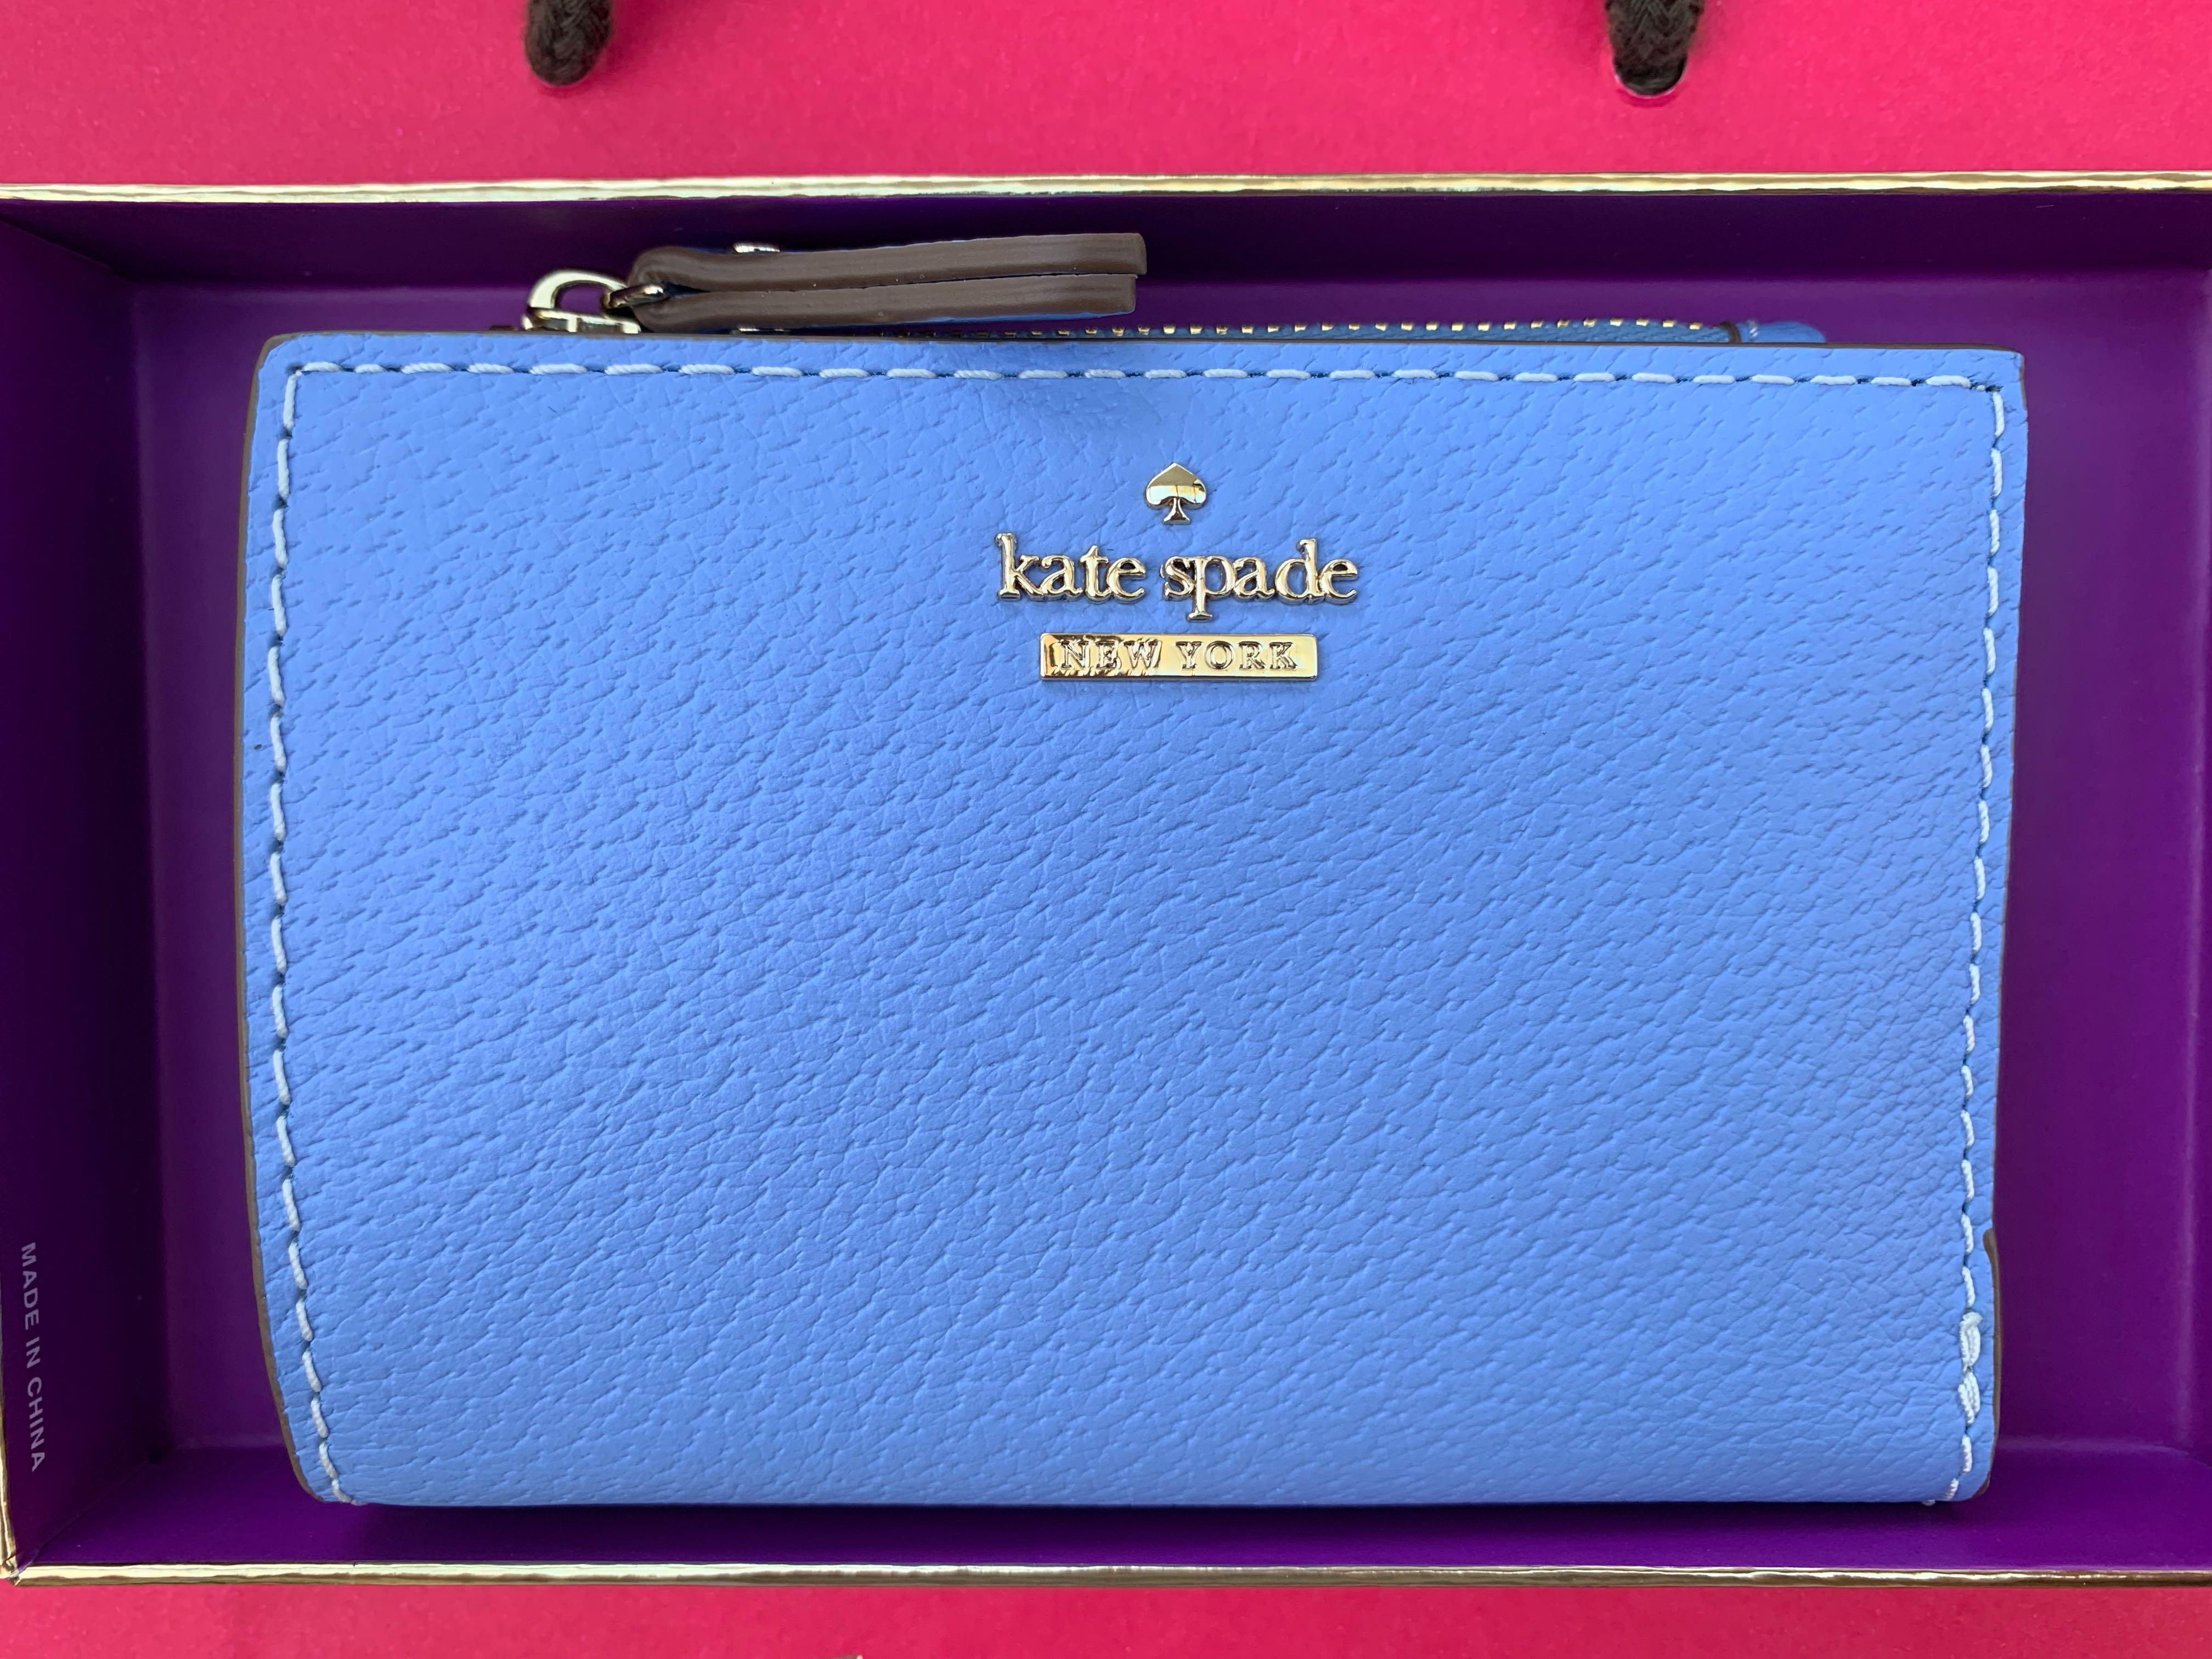 Kate spade blue wallet with separate card wallet insert